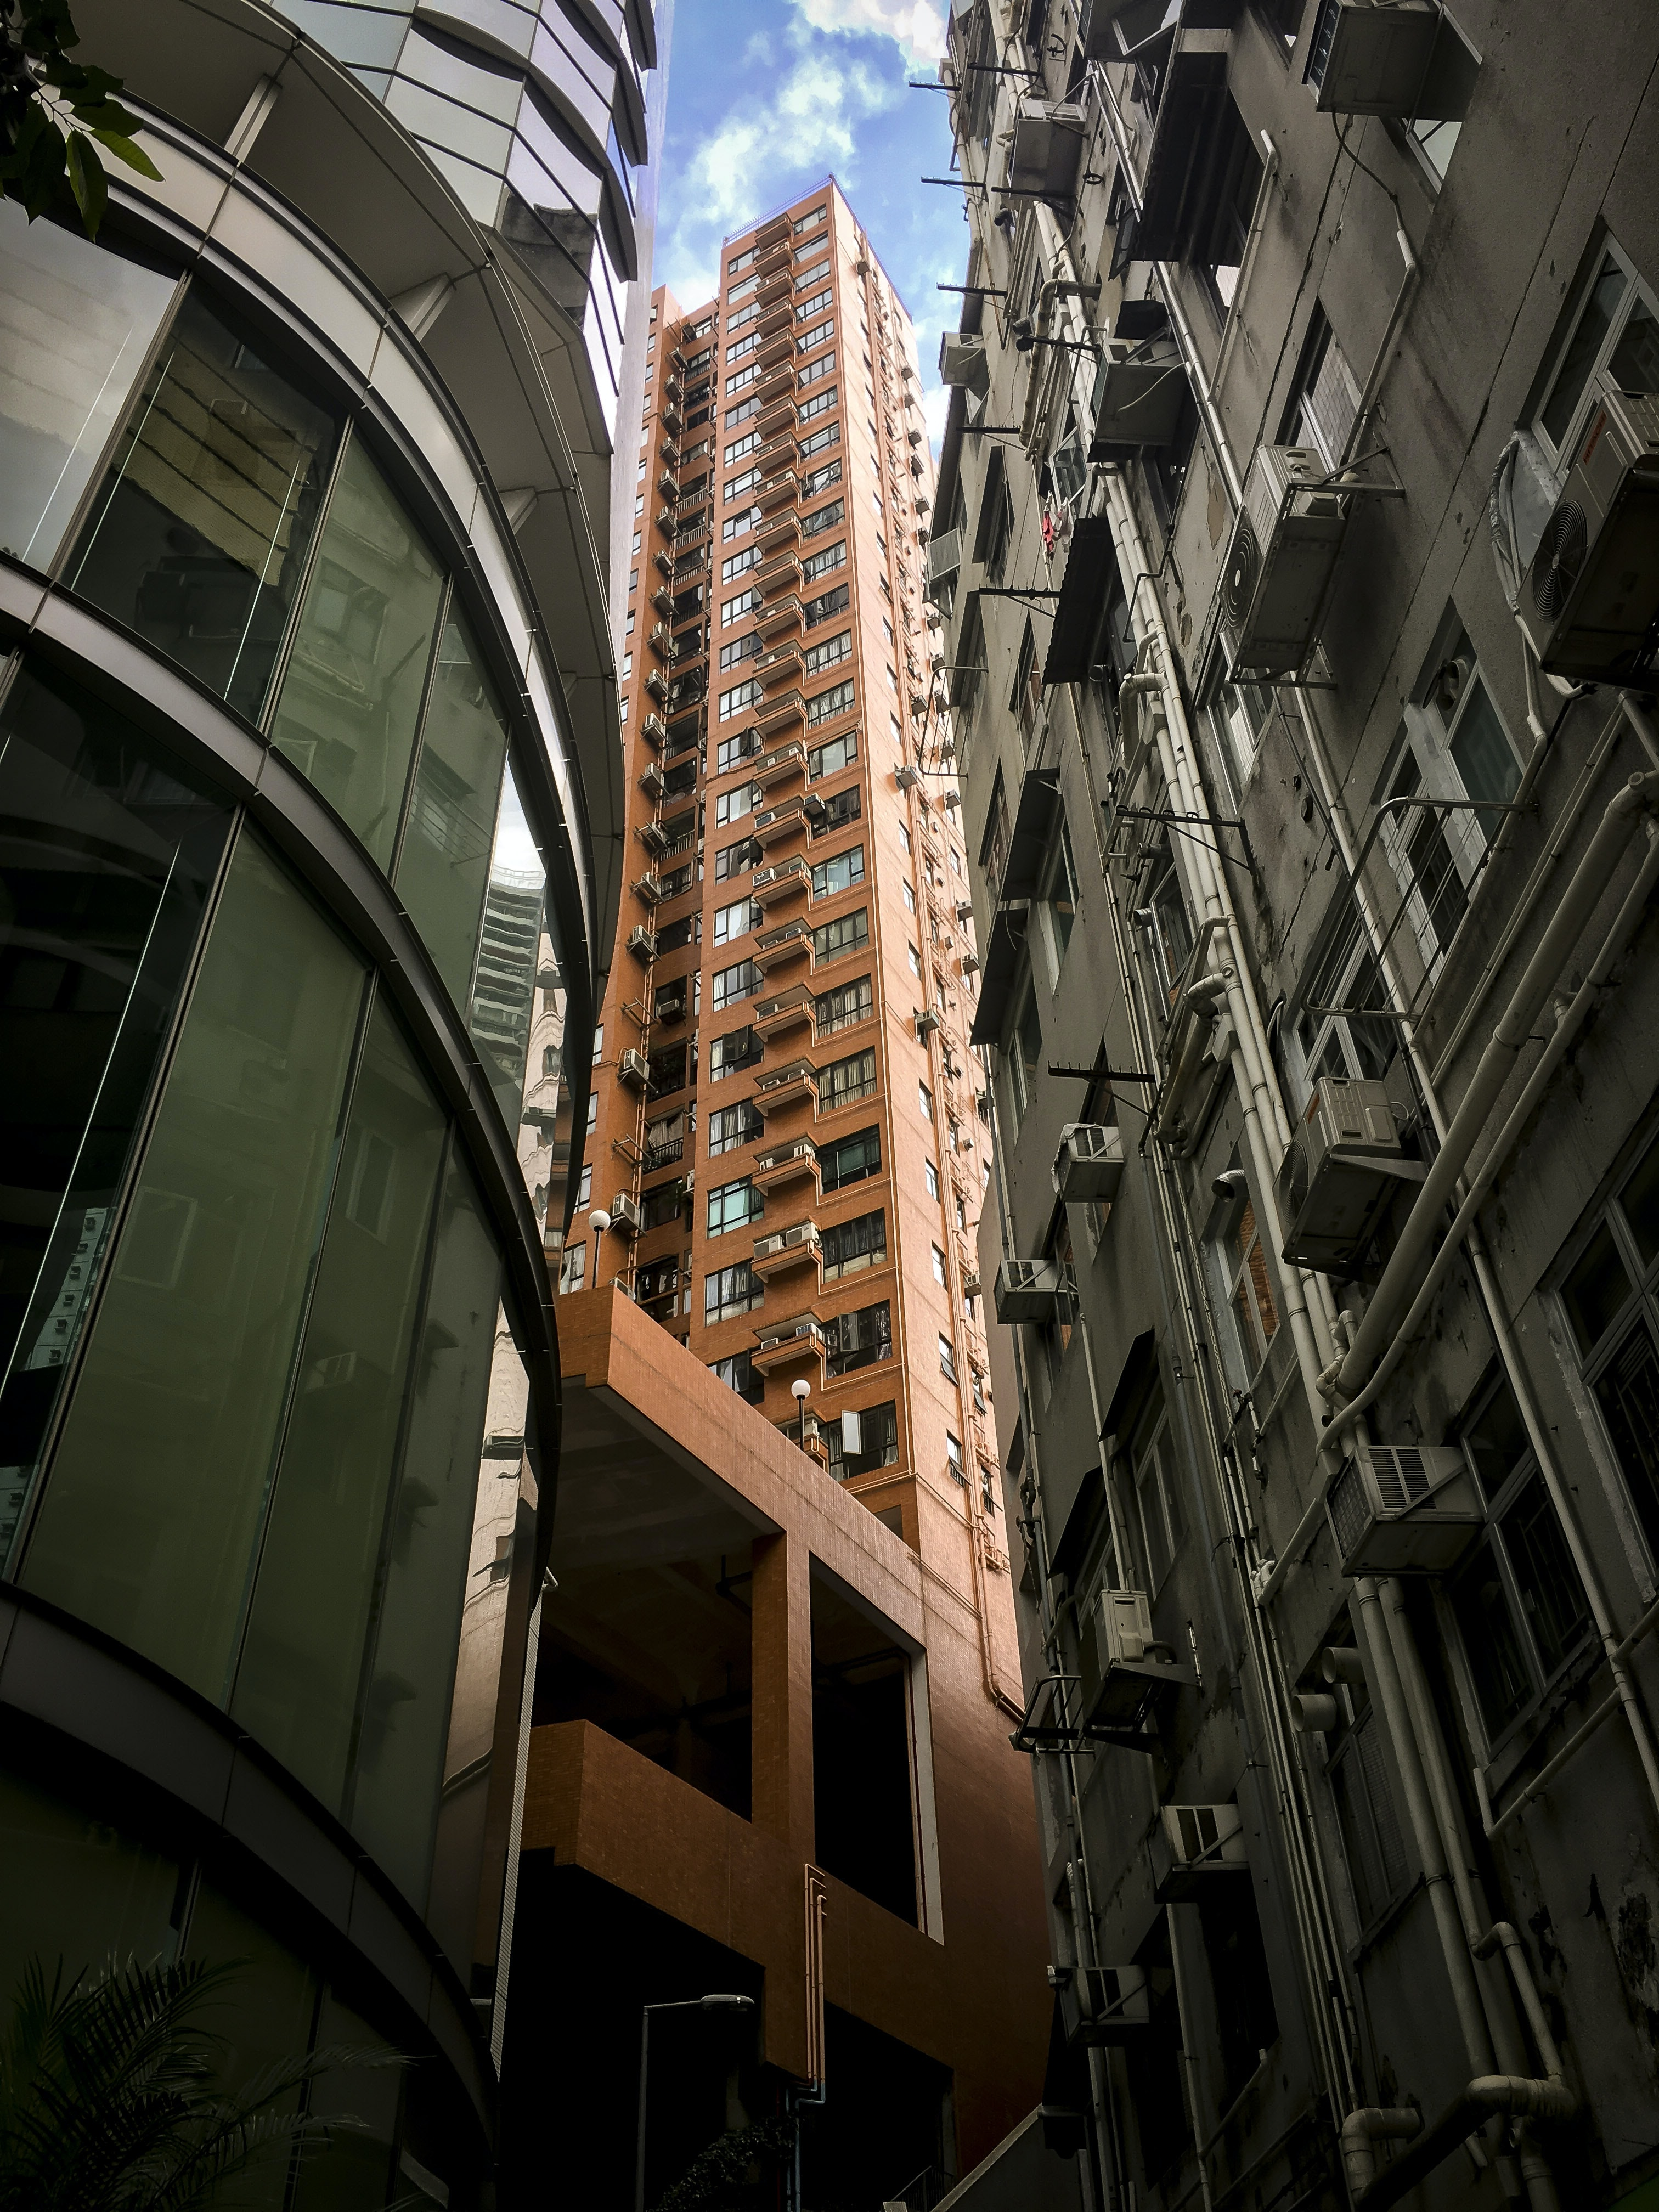 brown high-rise concrete building during daytime